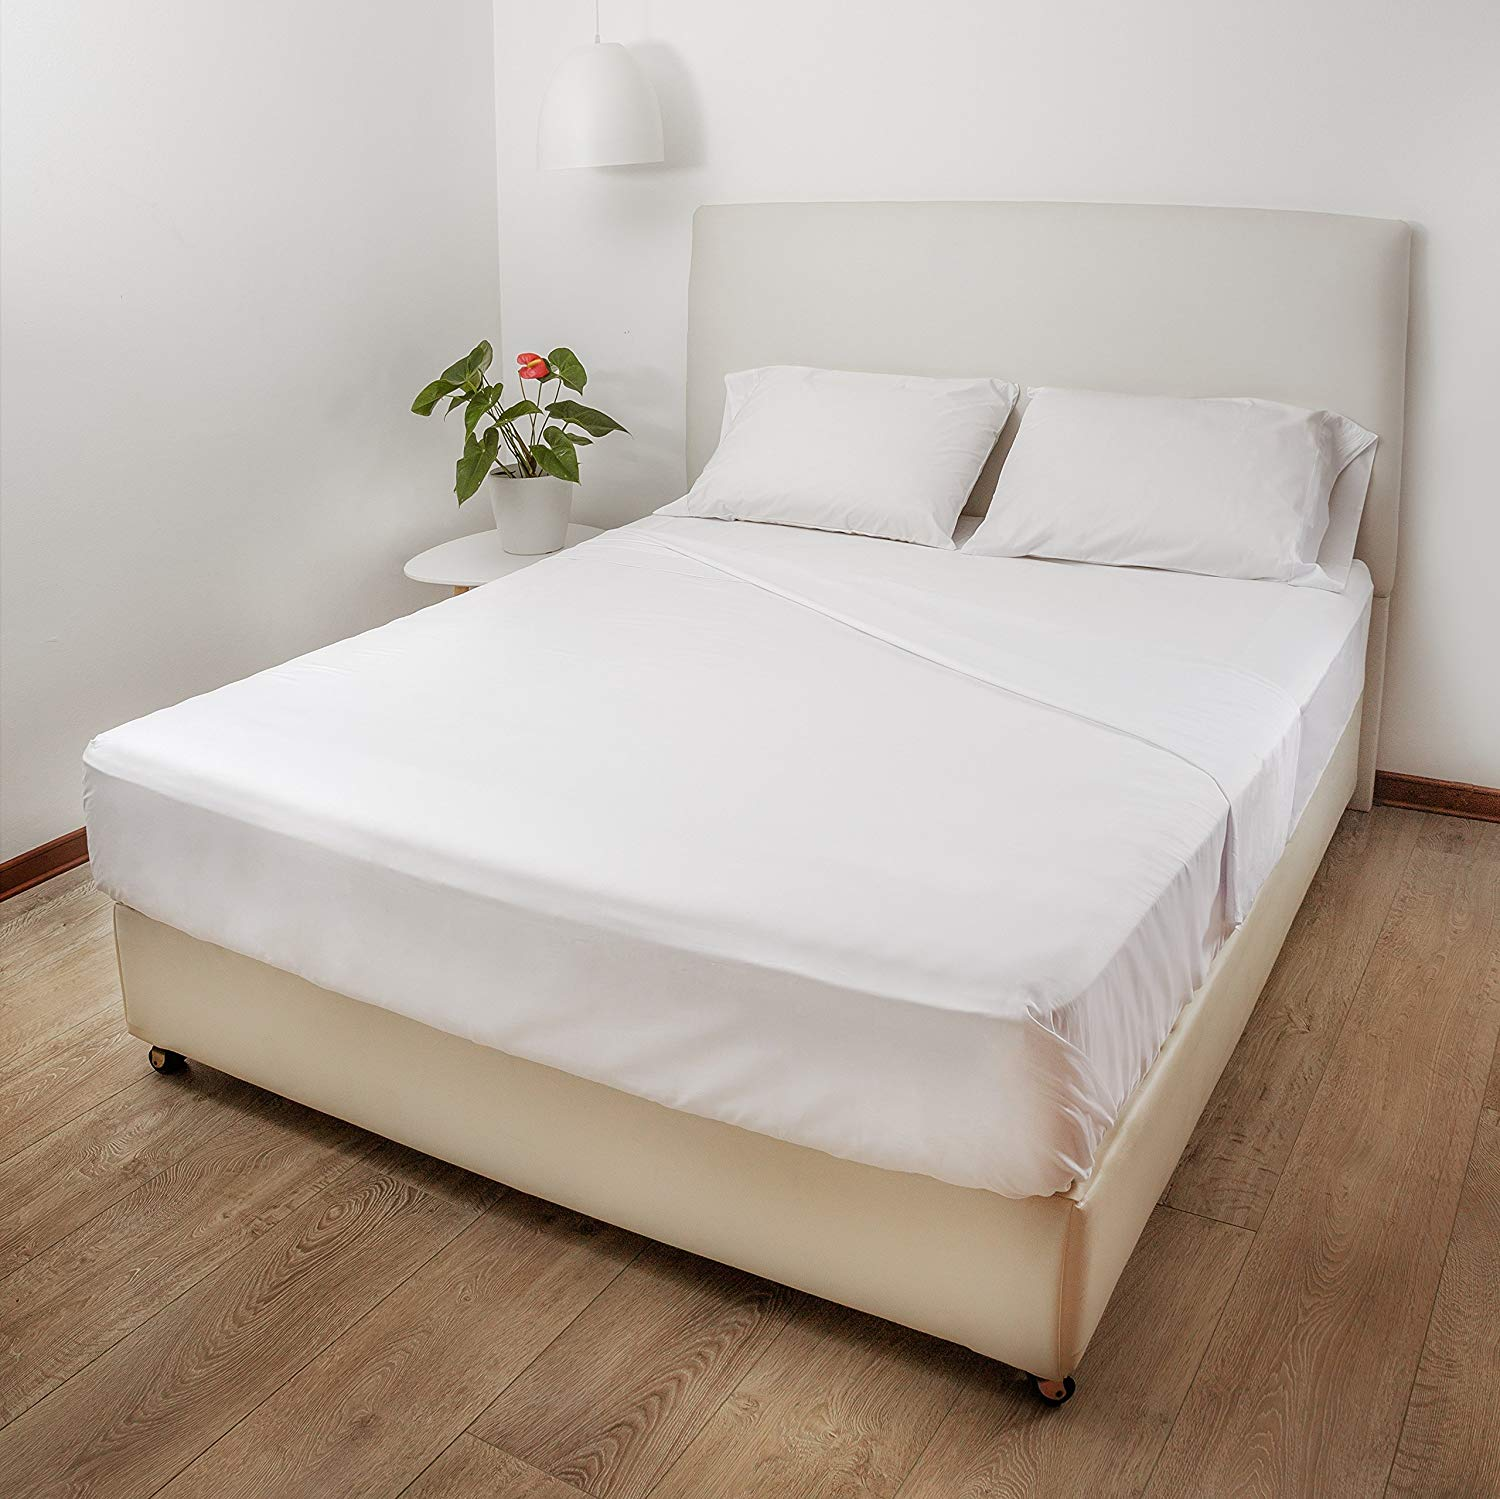 Peru Pima Cotton Sheets - Best Percale Sheets